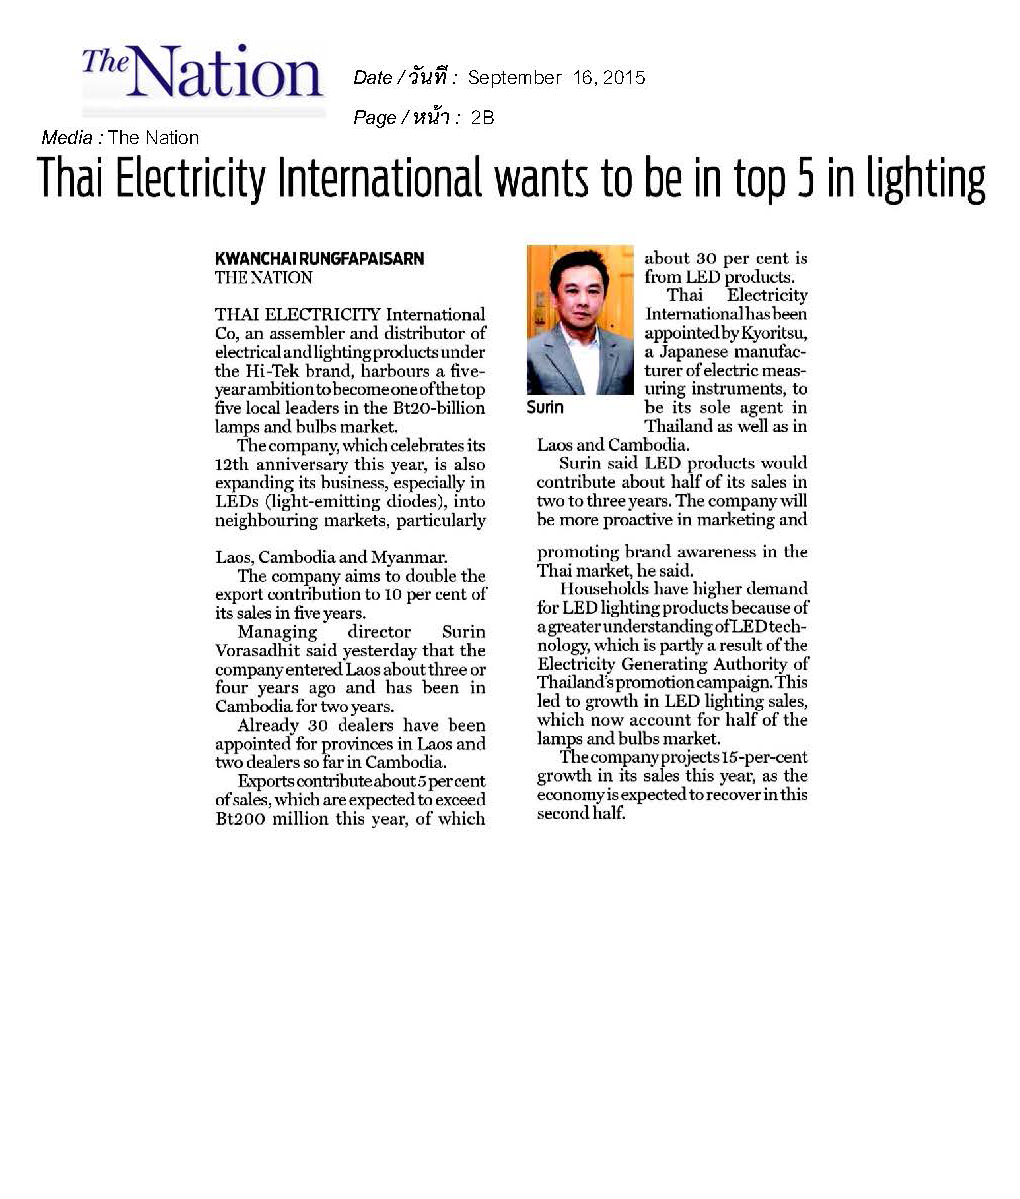 Thai Electricity International wants to be in top 5 in lighting market in 5 years